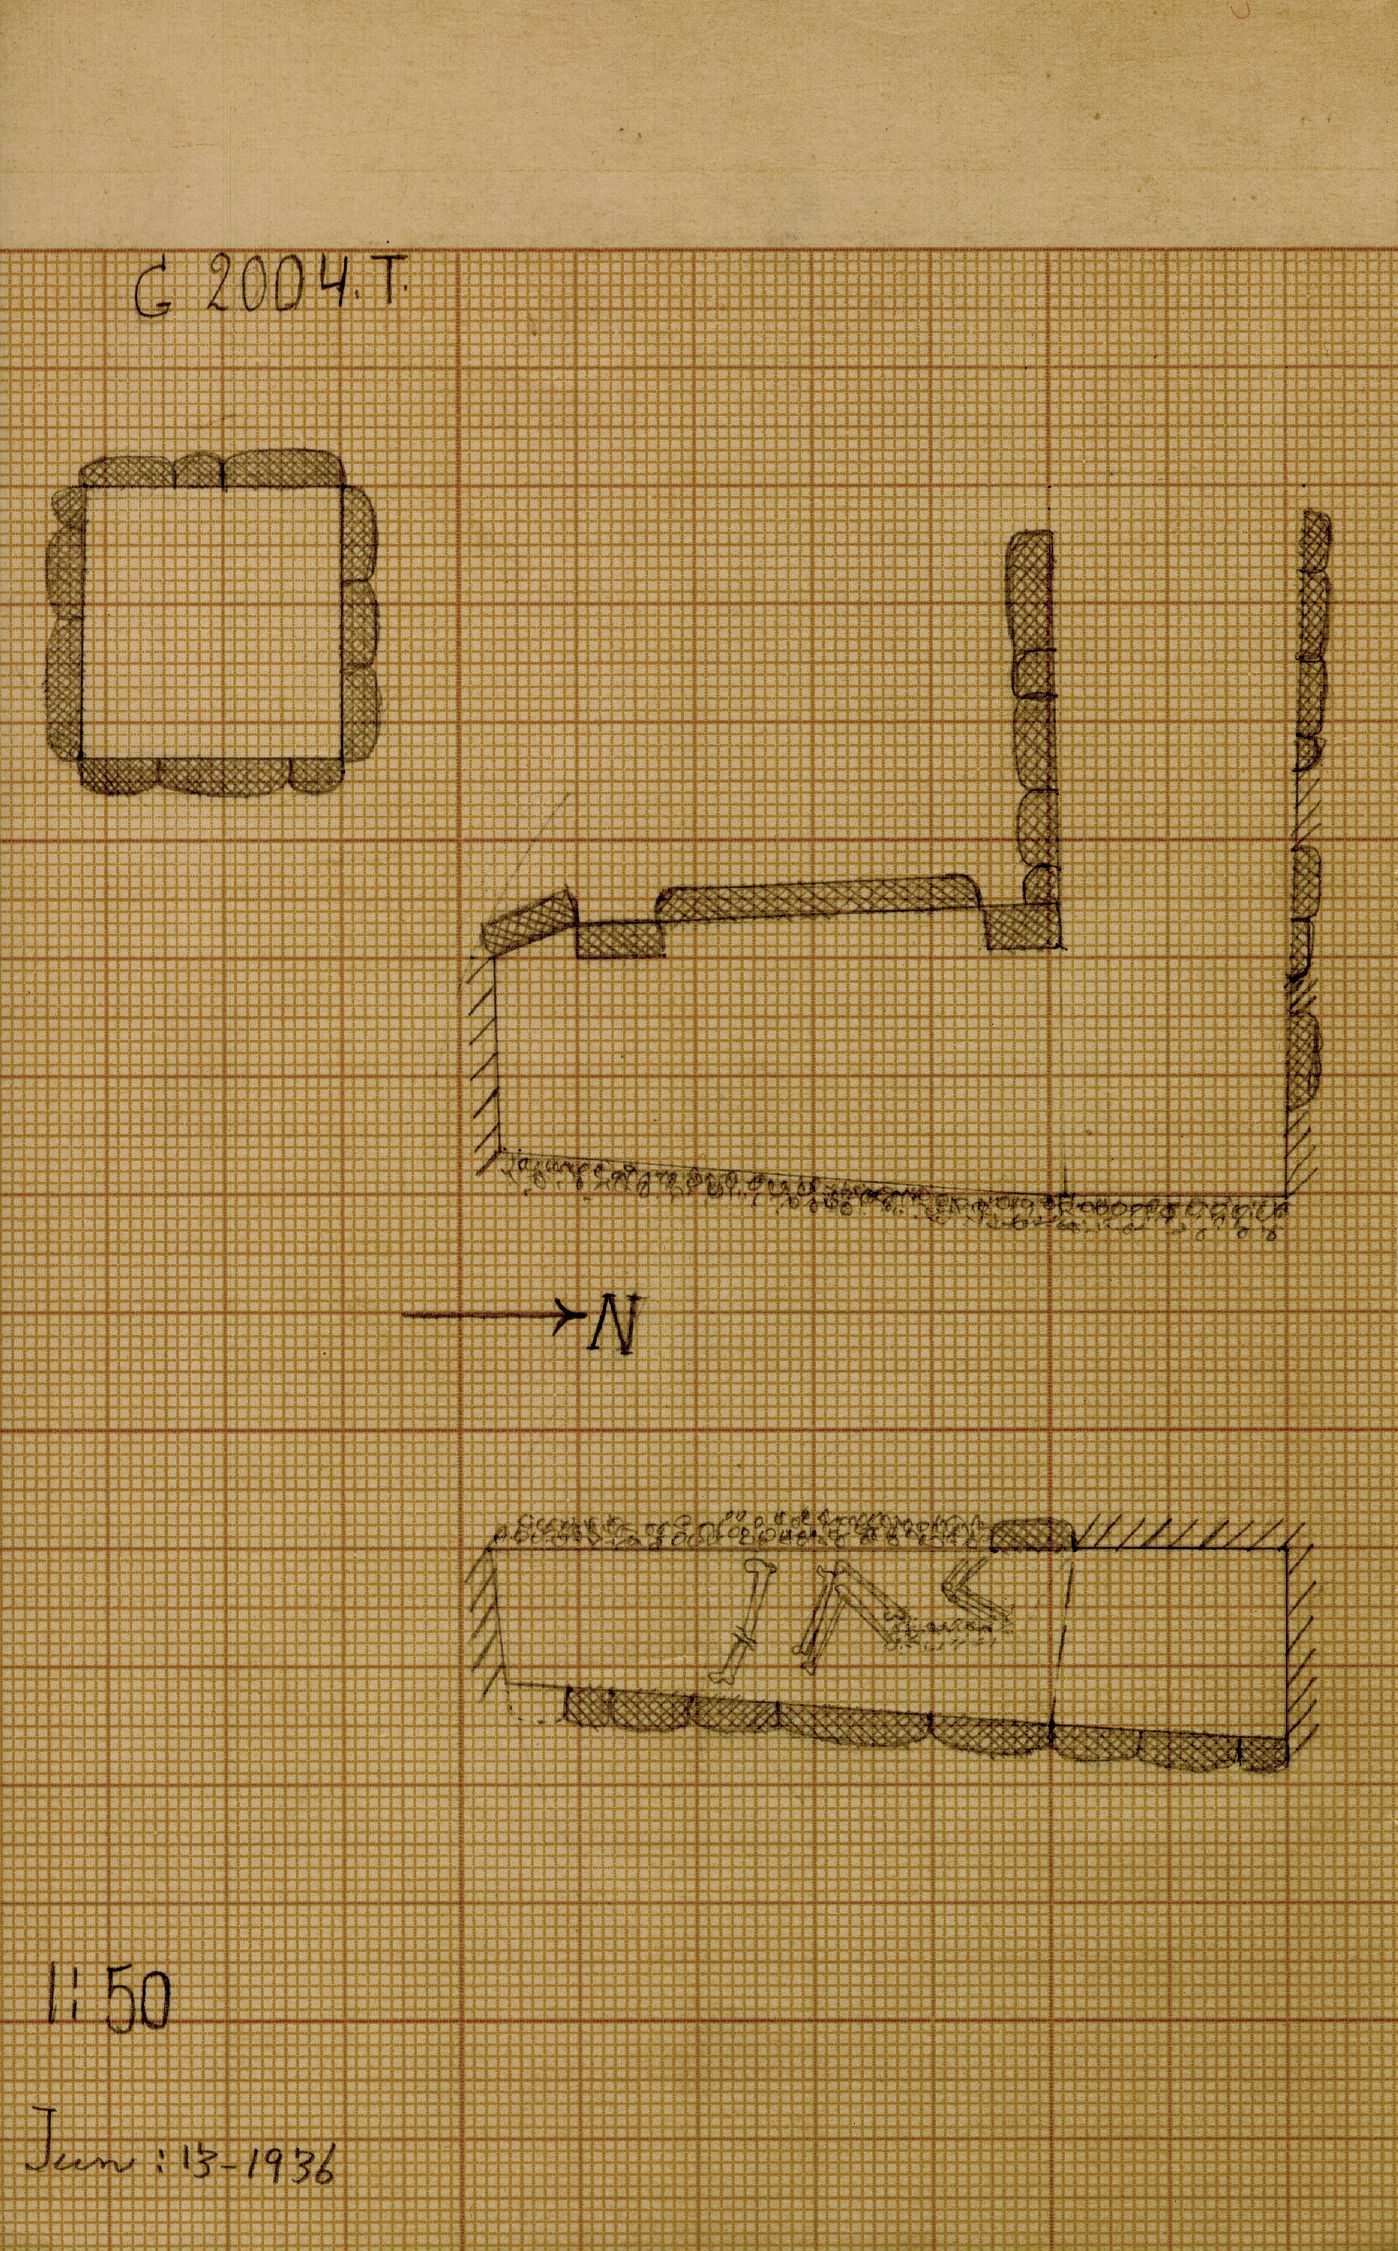 Maps and plans: G 2004, Shaft T